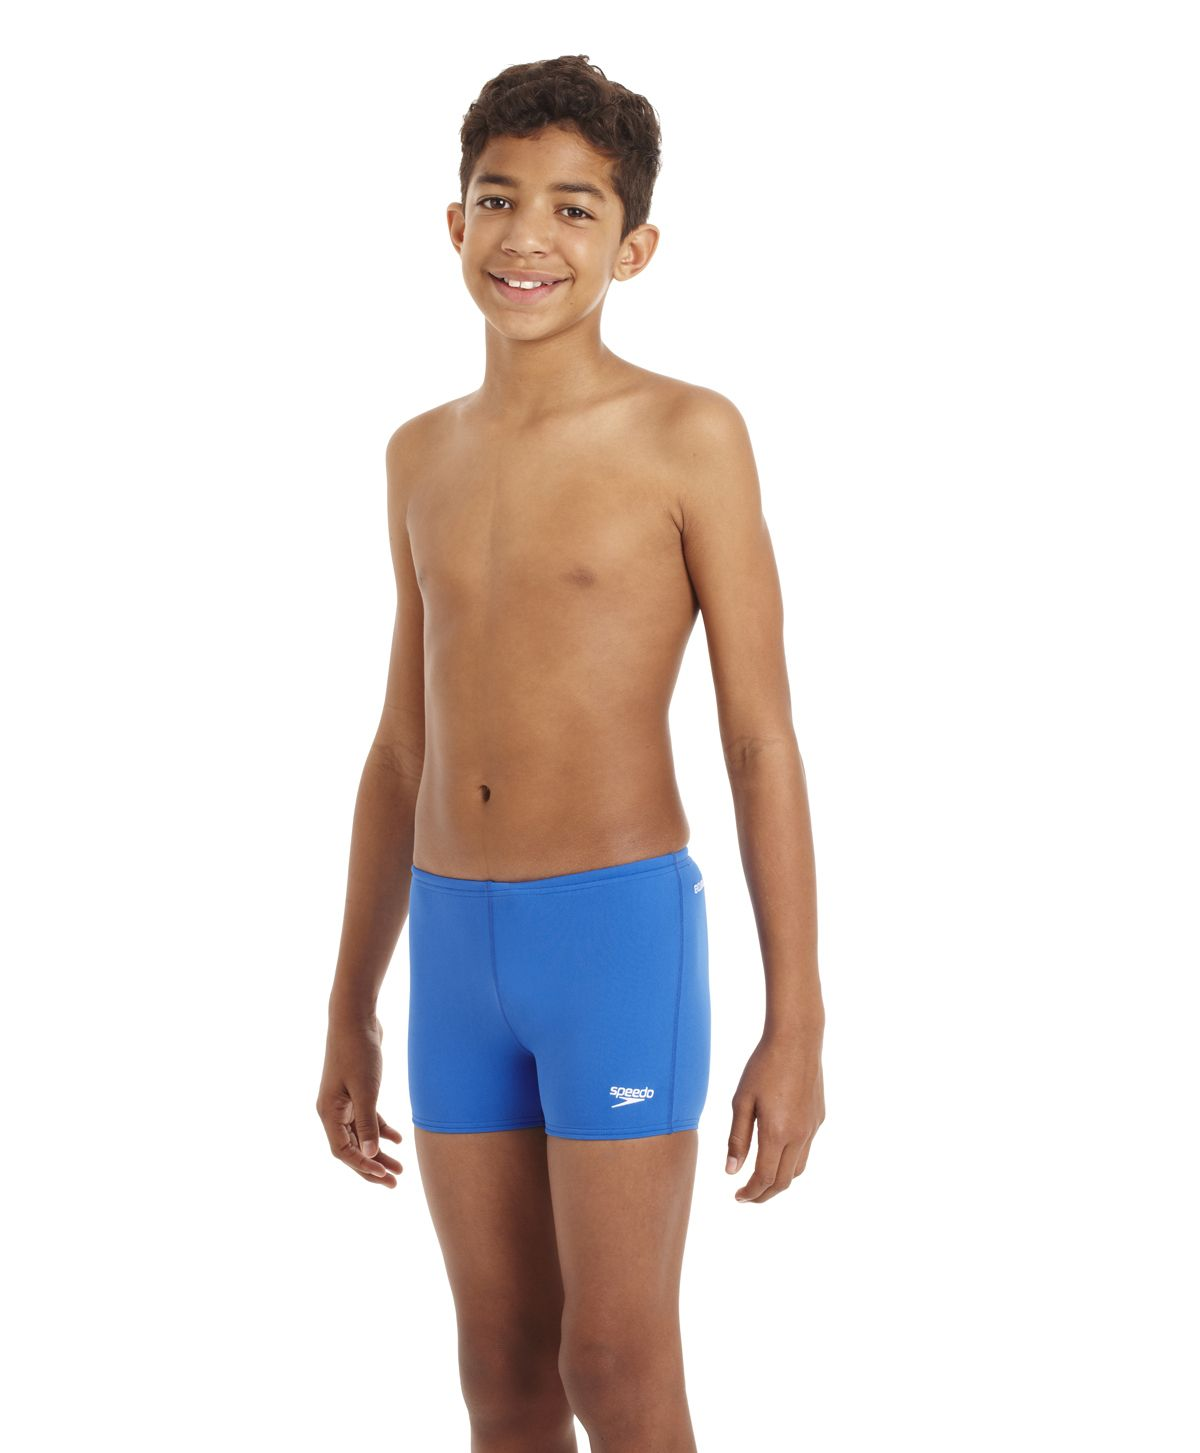 speedo boys endurance swimming trunks